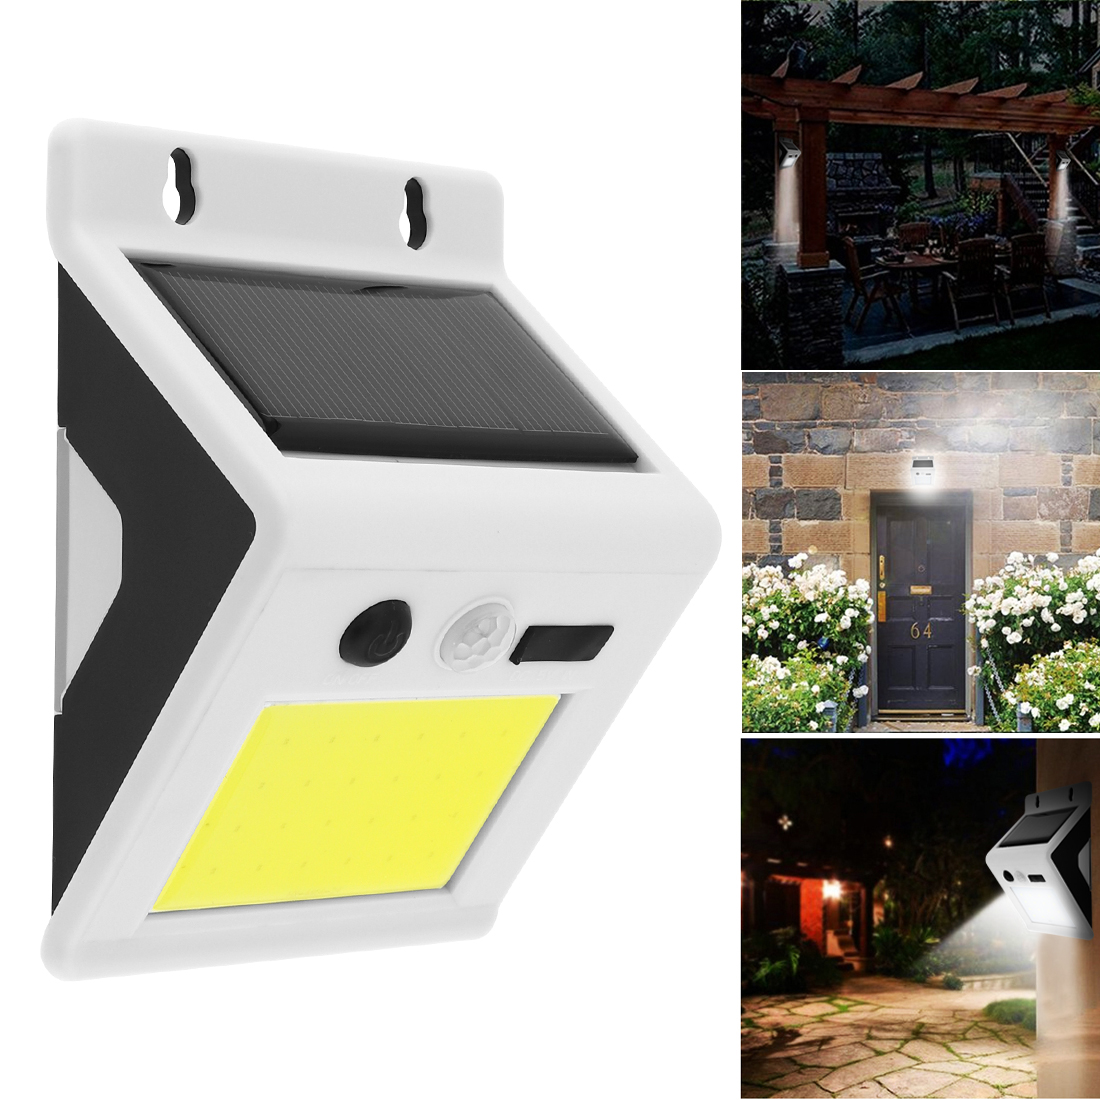 Waterproof LED Solar Light,COB Rechargeable Wall Lamp with PIR Motion Sensor and USB Charger for Garden/ Yard/ Driveway/ Street